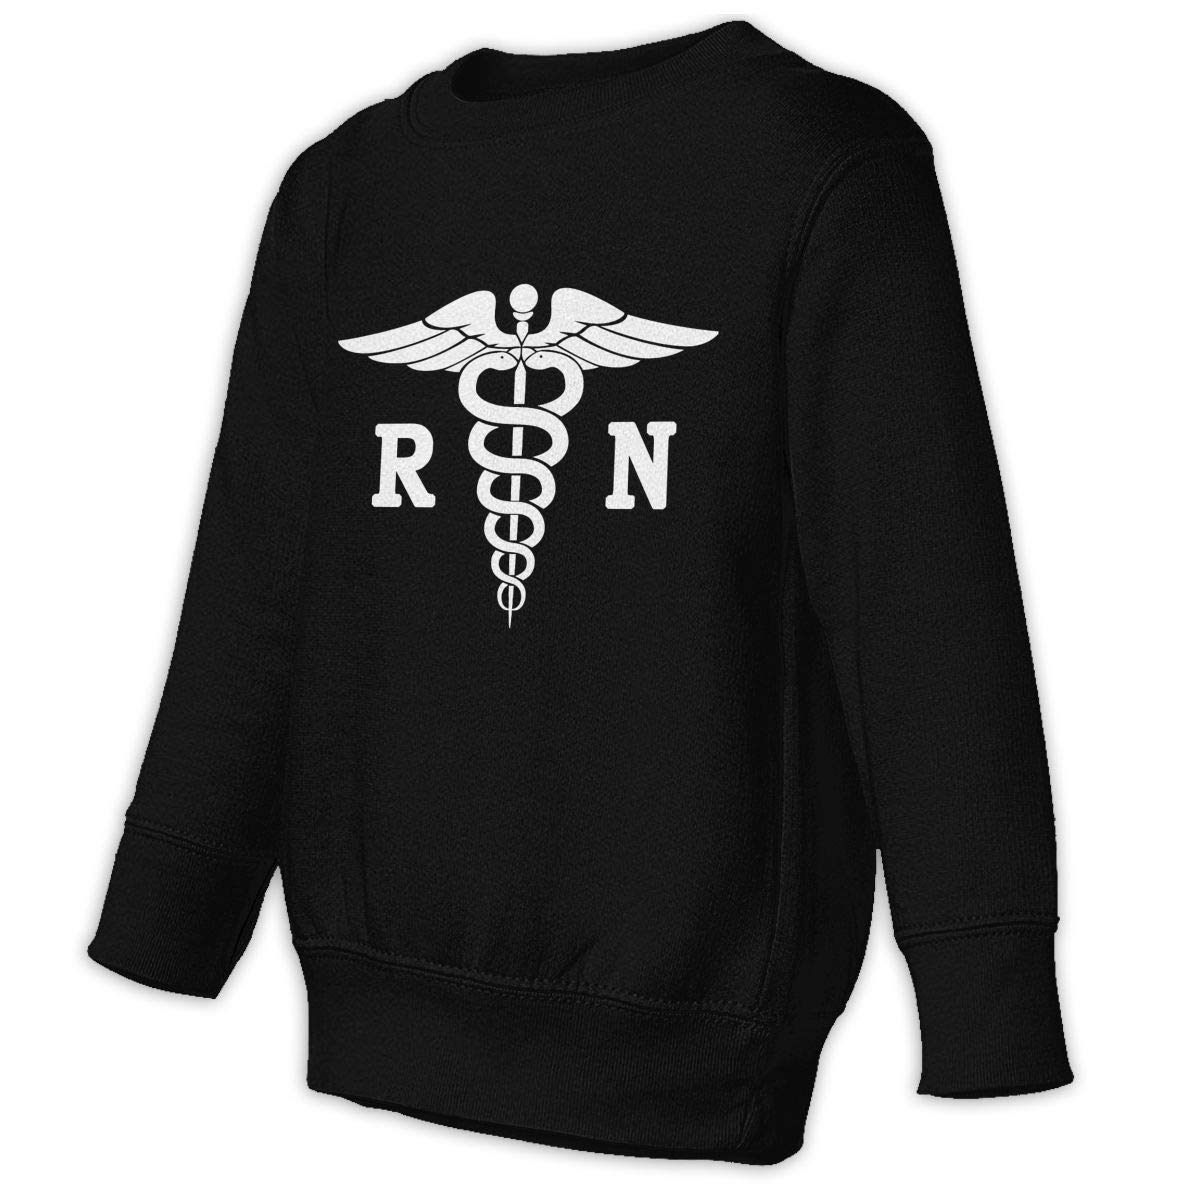 GHYNJUM Registered Nurse R N Toddler Unisex Cotton Long Sleeve Round Neck Pullover